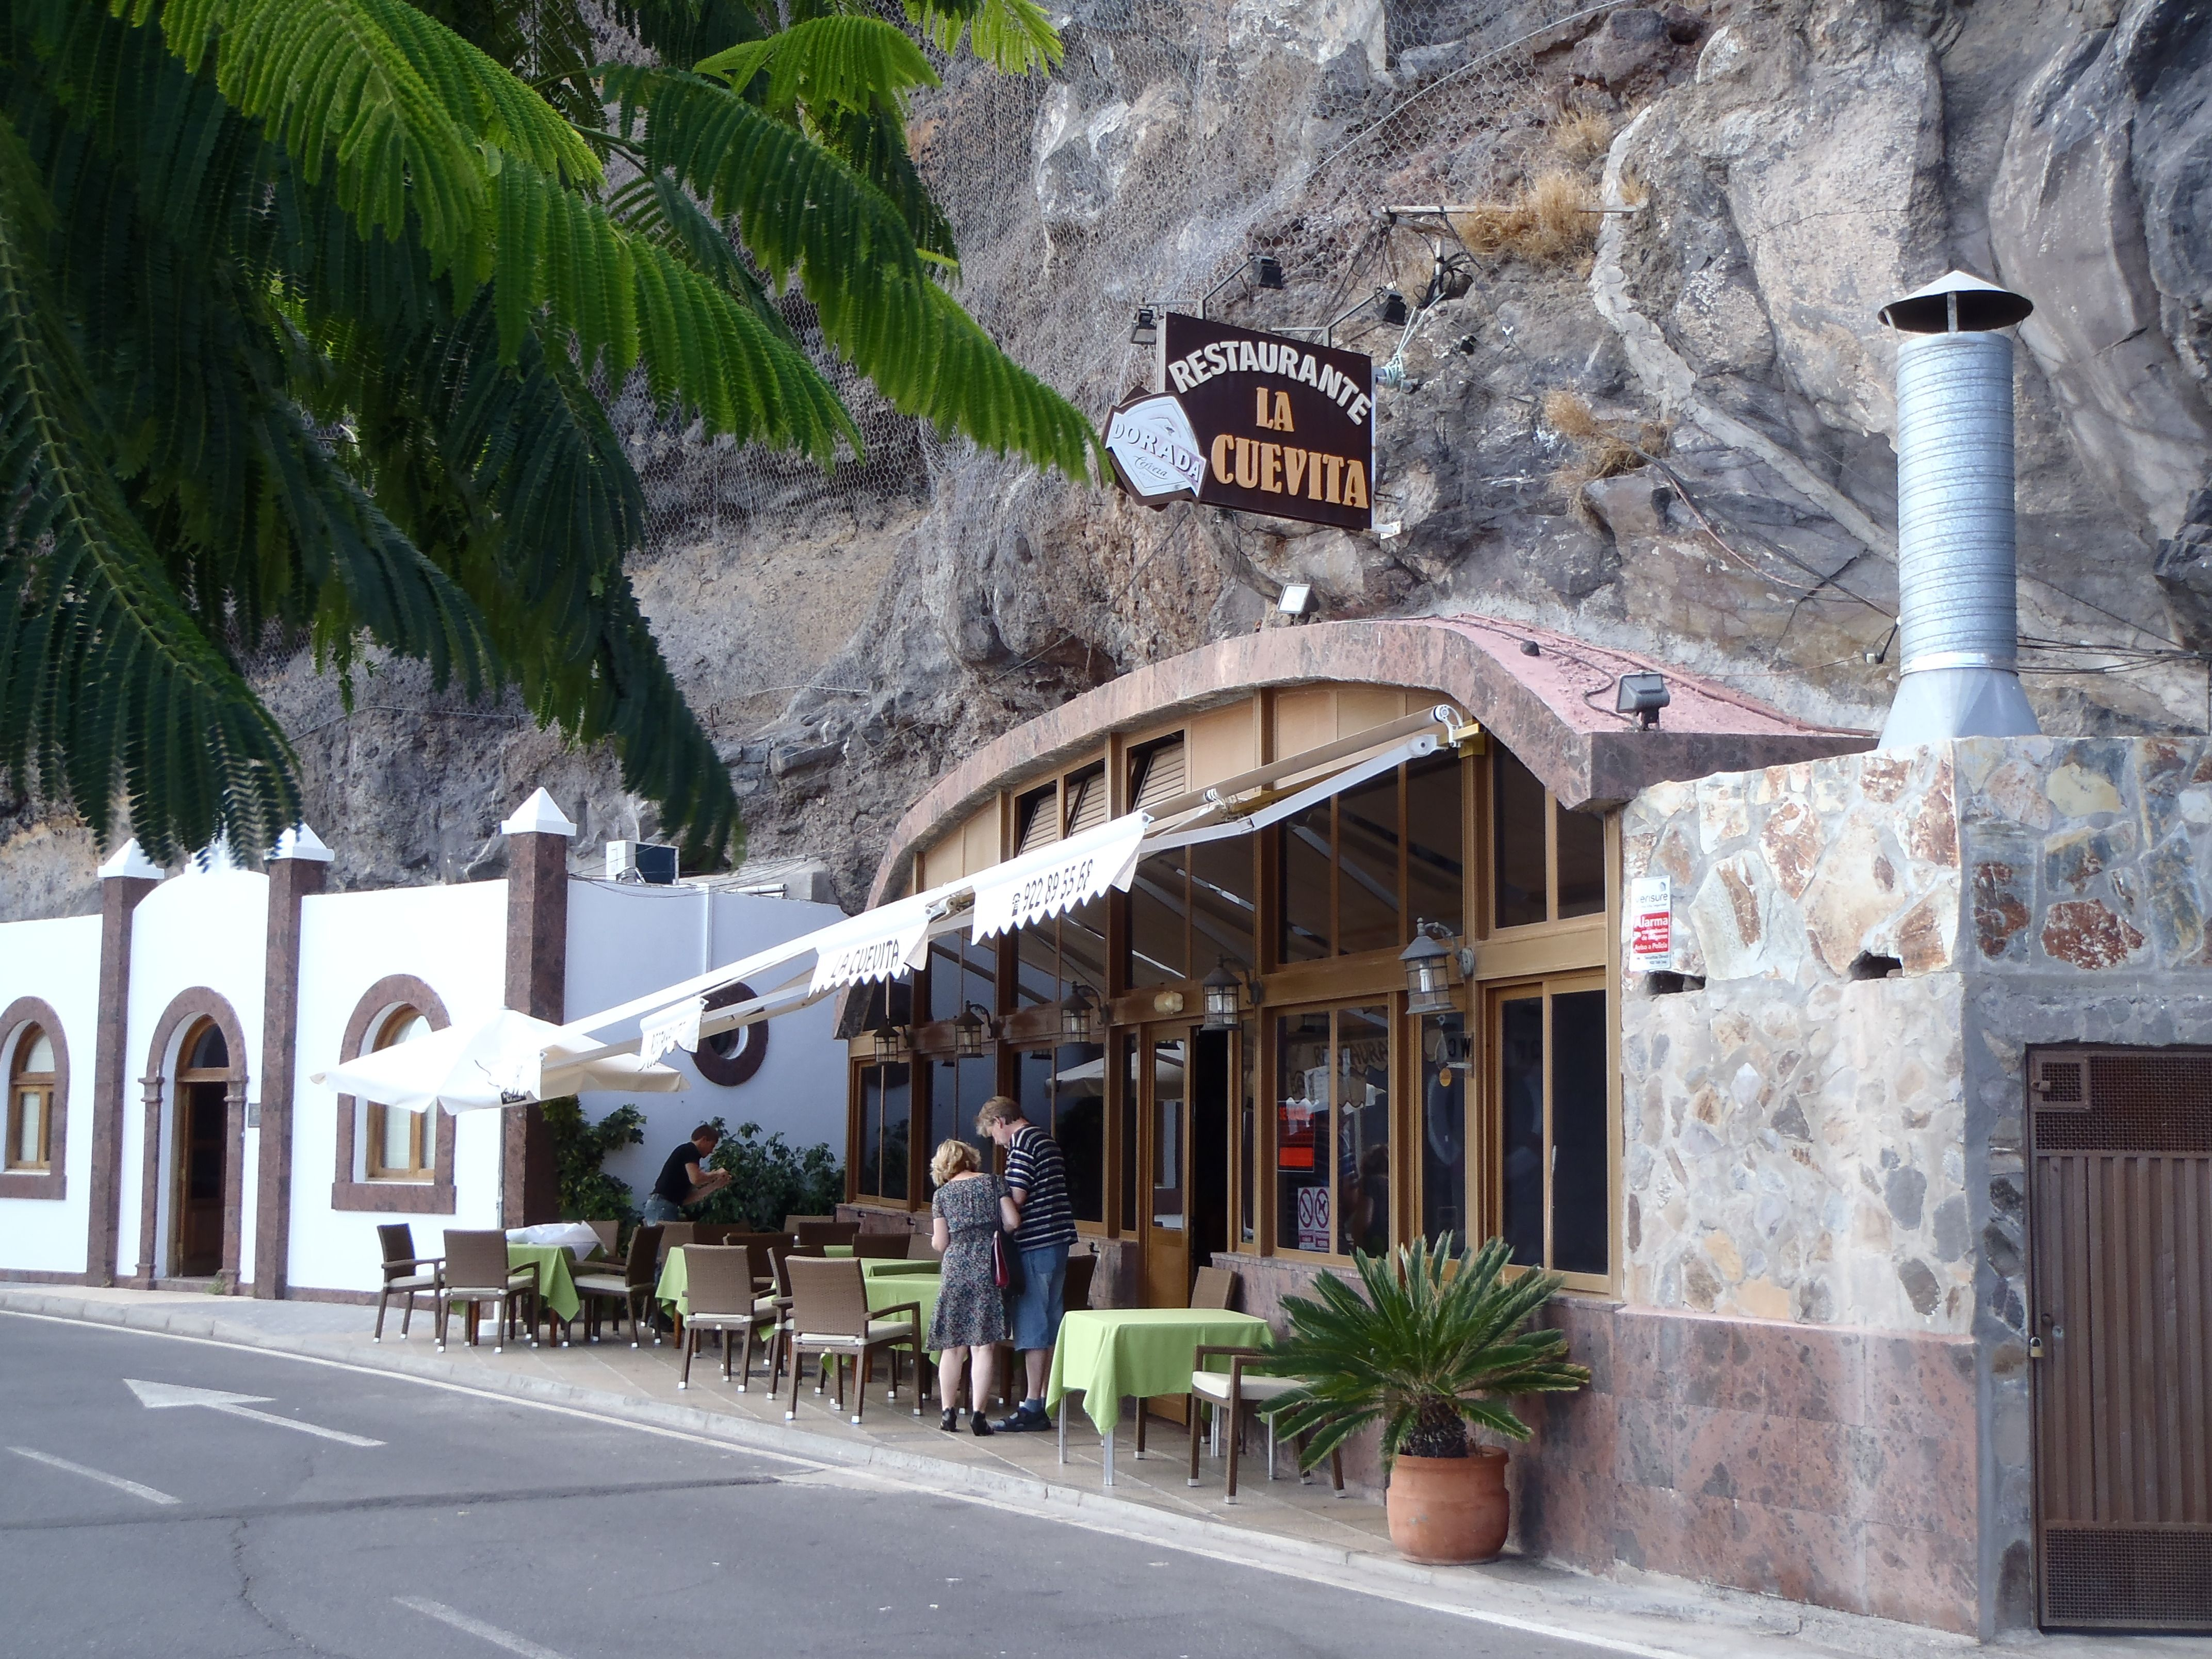 A restaurant built into the cliff